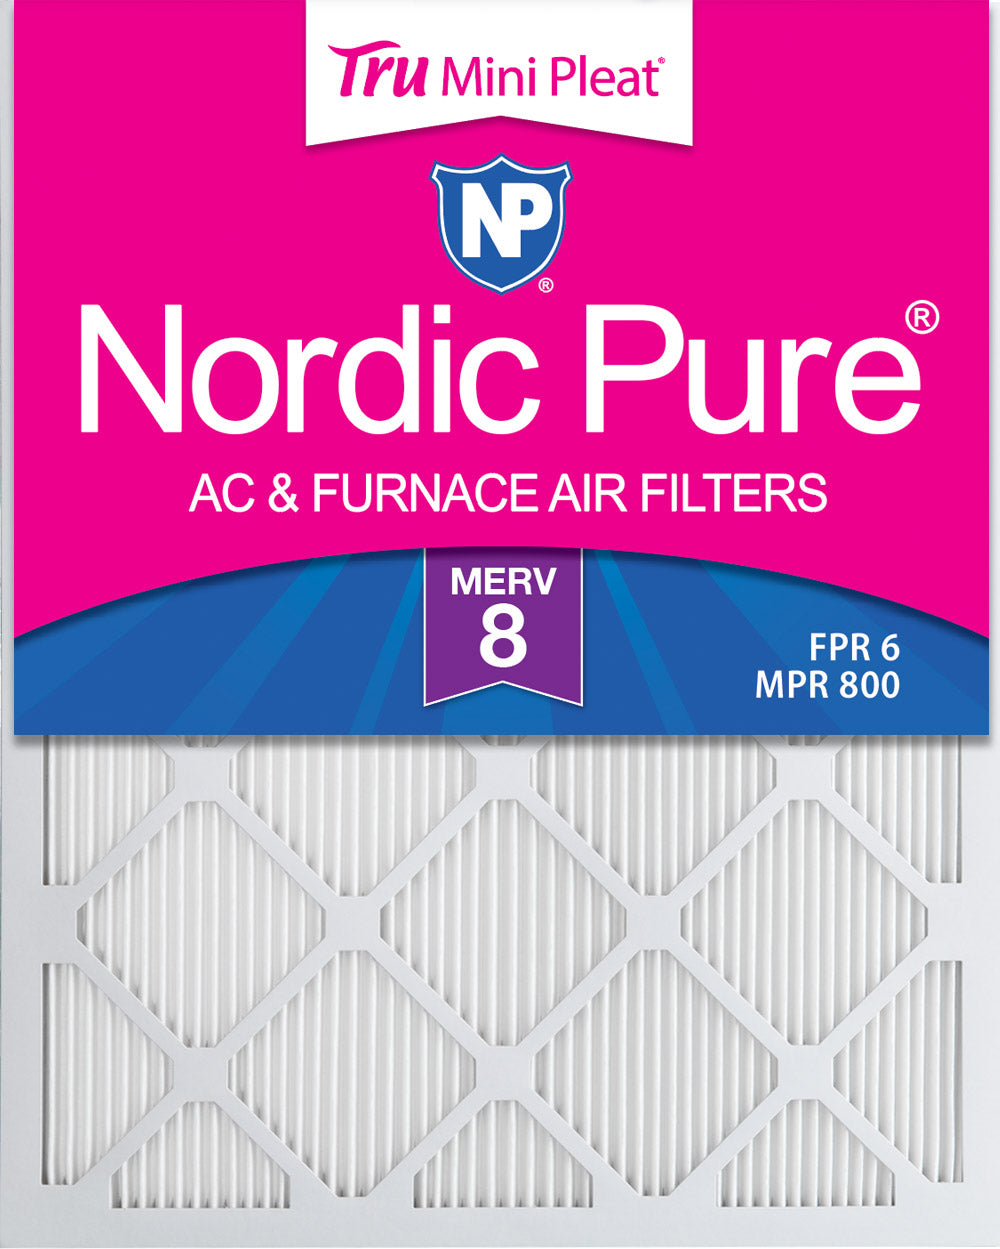 14x24x1 Tru Mini Pleat MERV 8 AC Furnace Air Filters 3 Pack